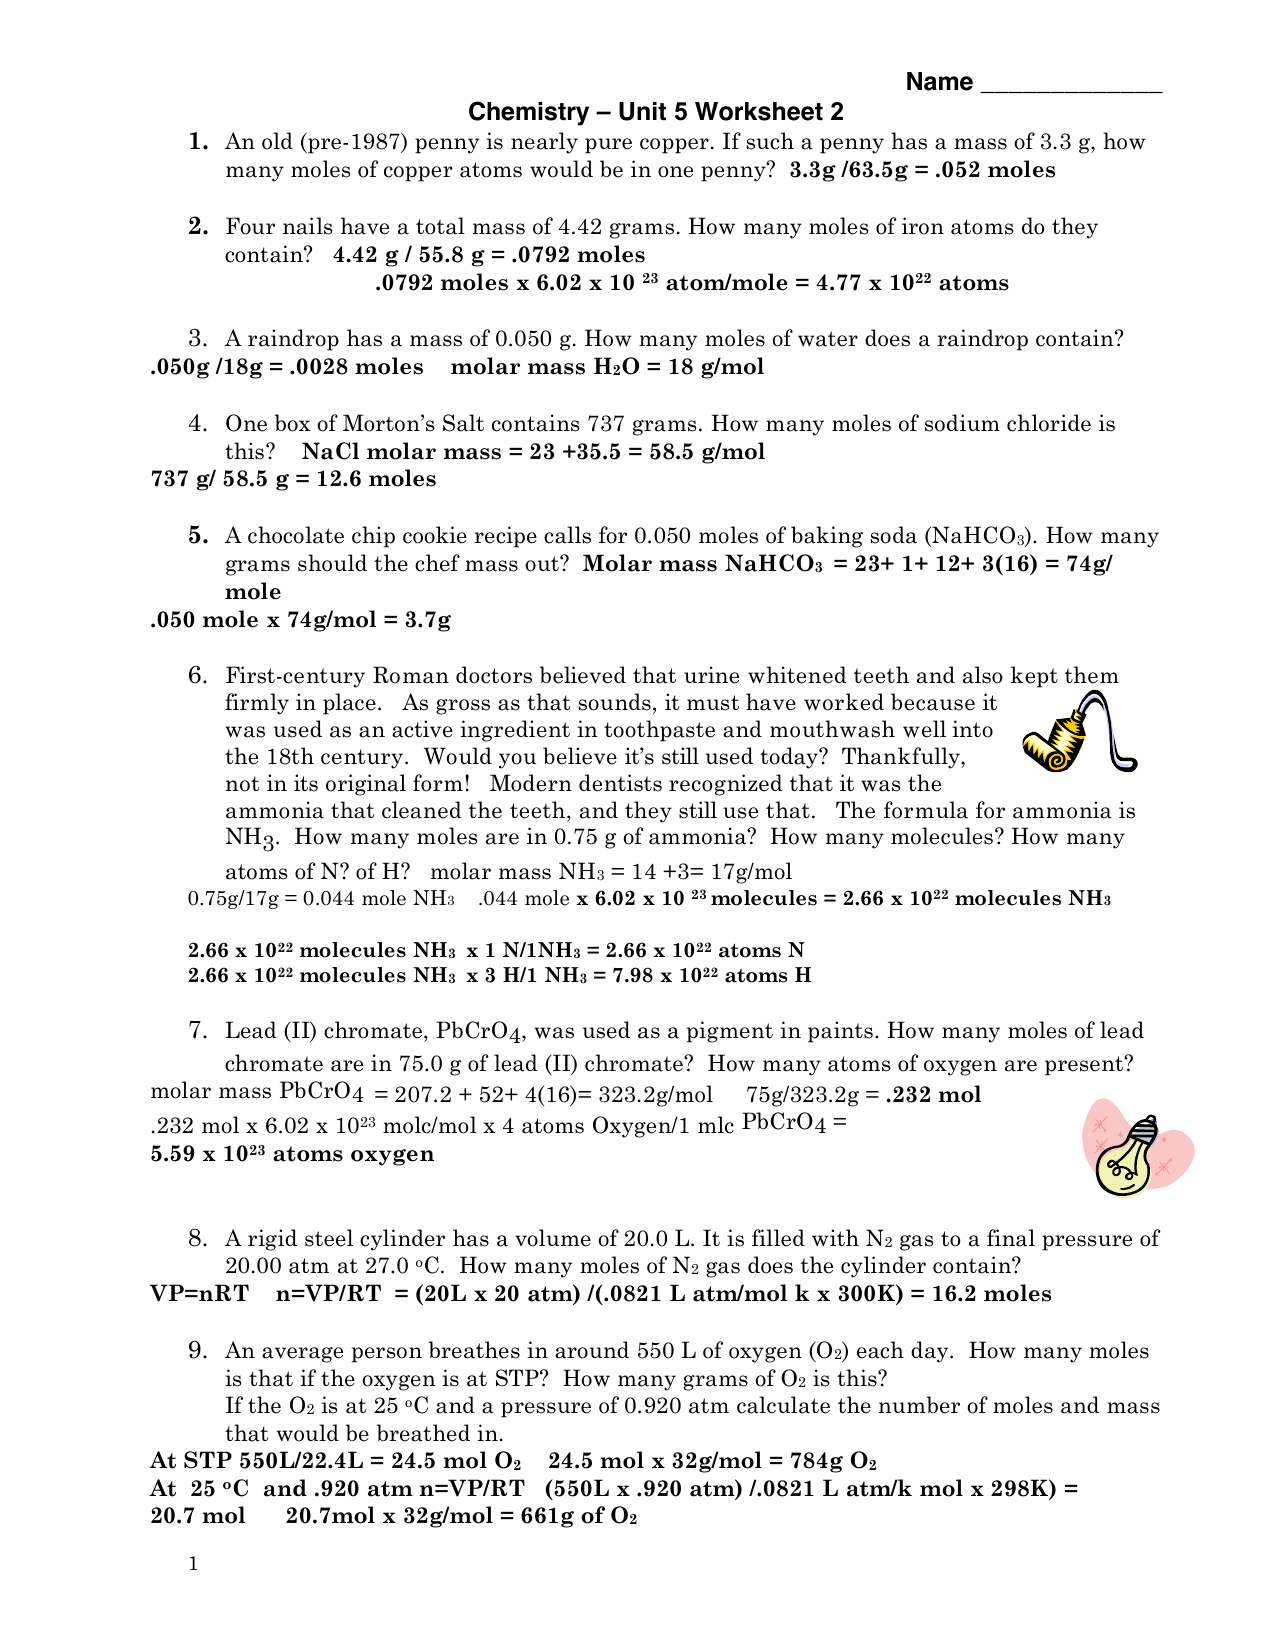 Unit 5 Worksheet 2